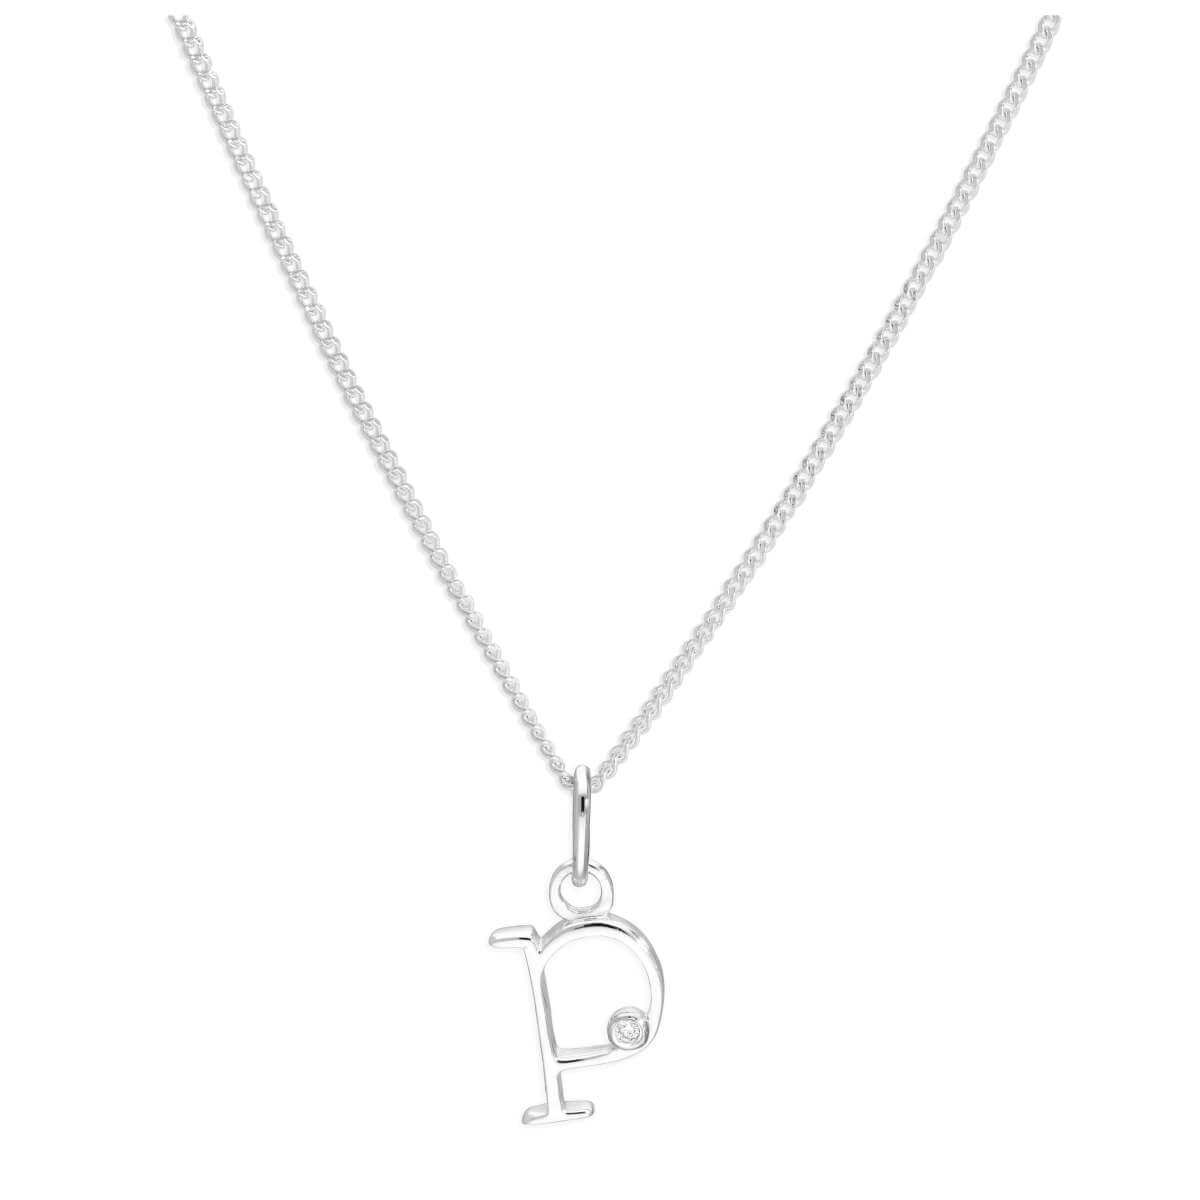 Sterling Silver Single Stone Diamond 0.4 points Letter P Necklace Pendant 14 - 32 Inches